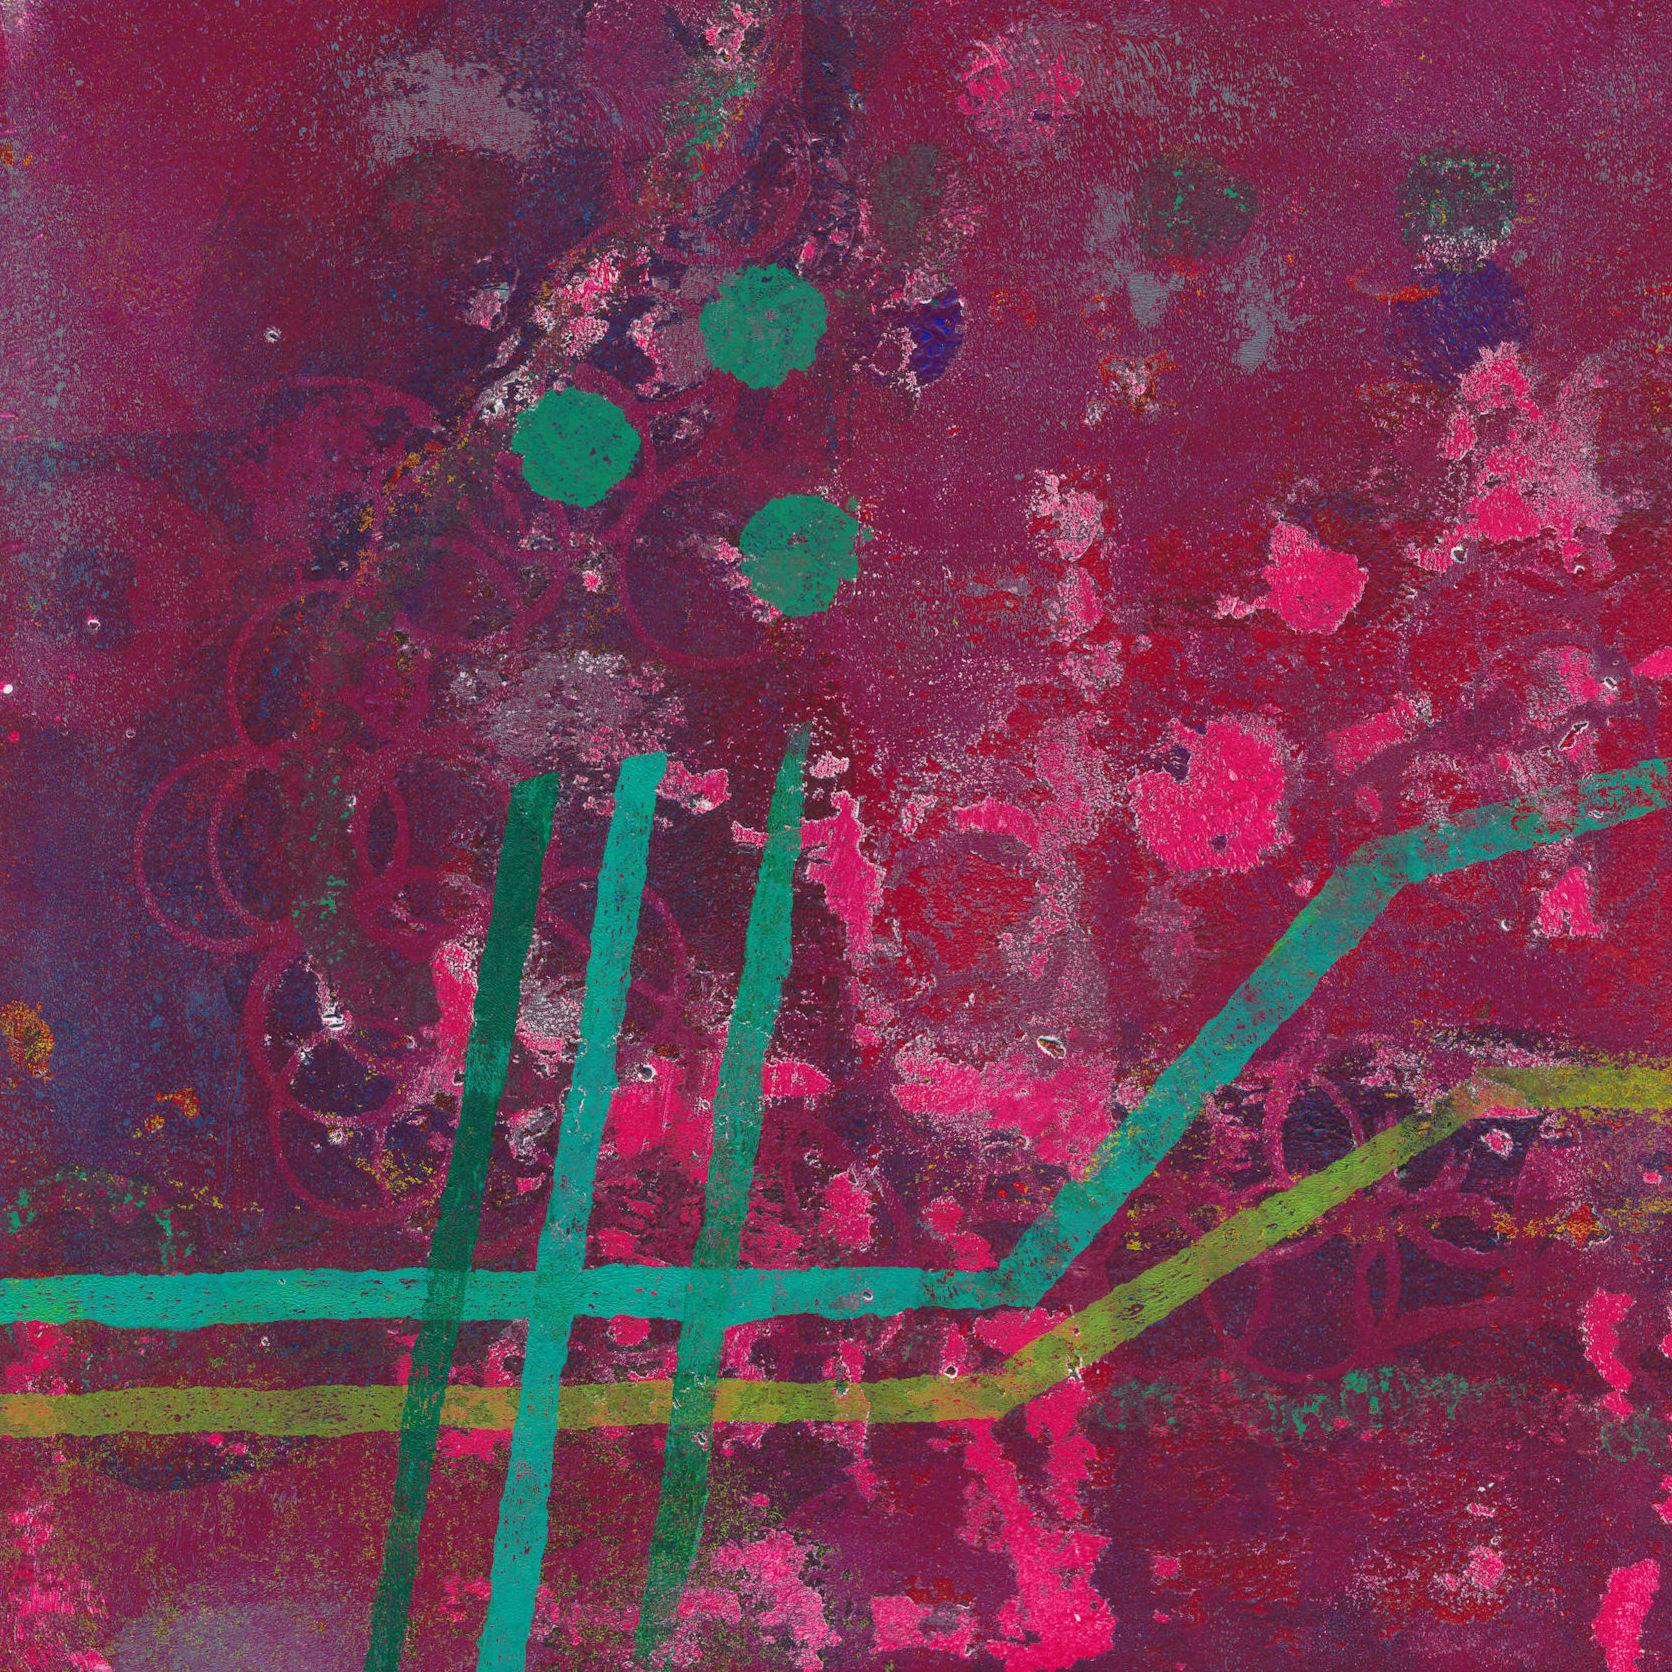 Lost in space - abstract monotype